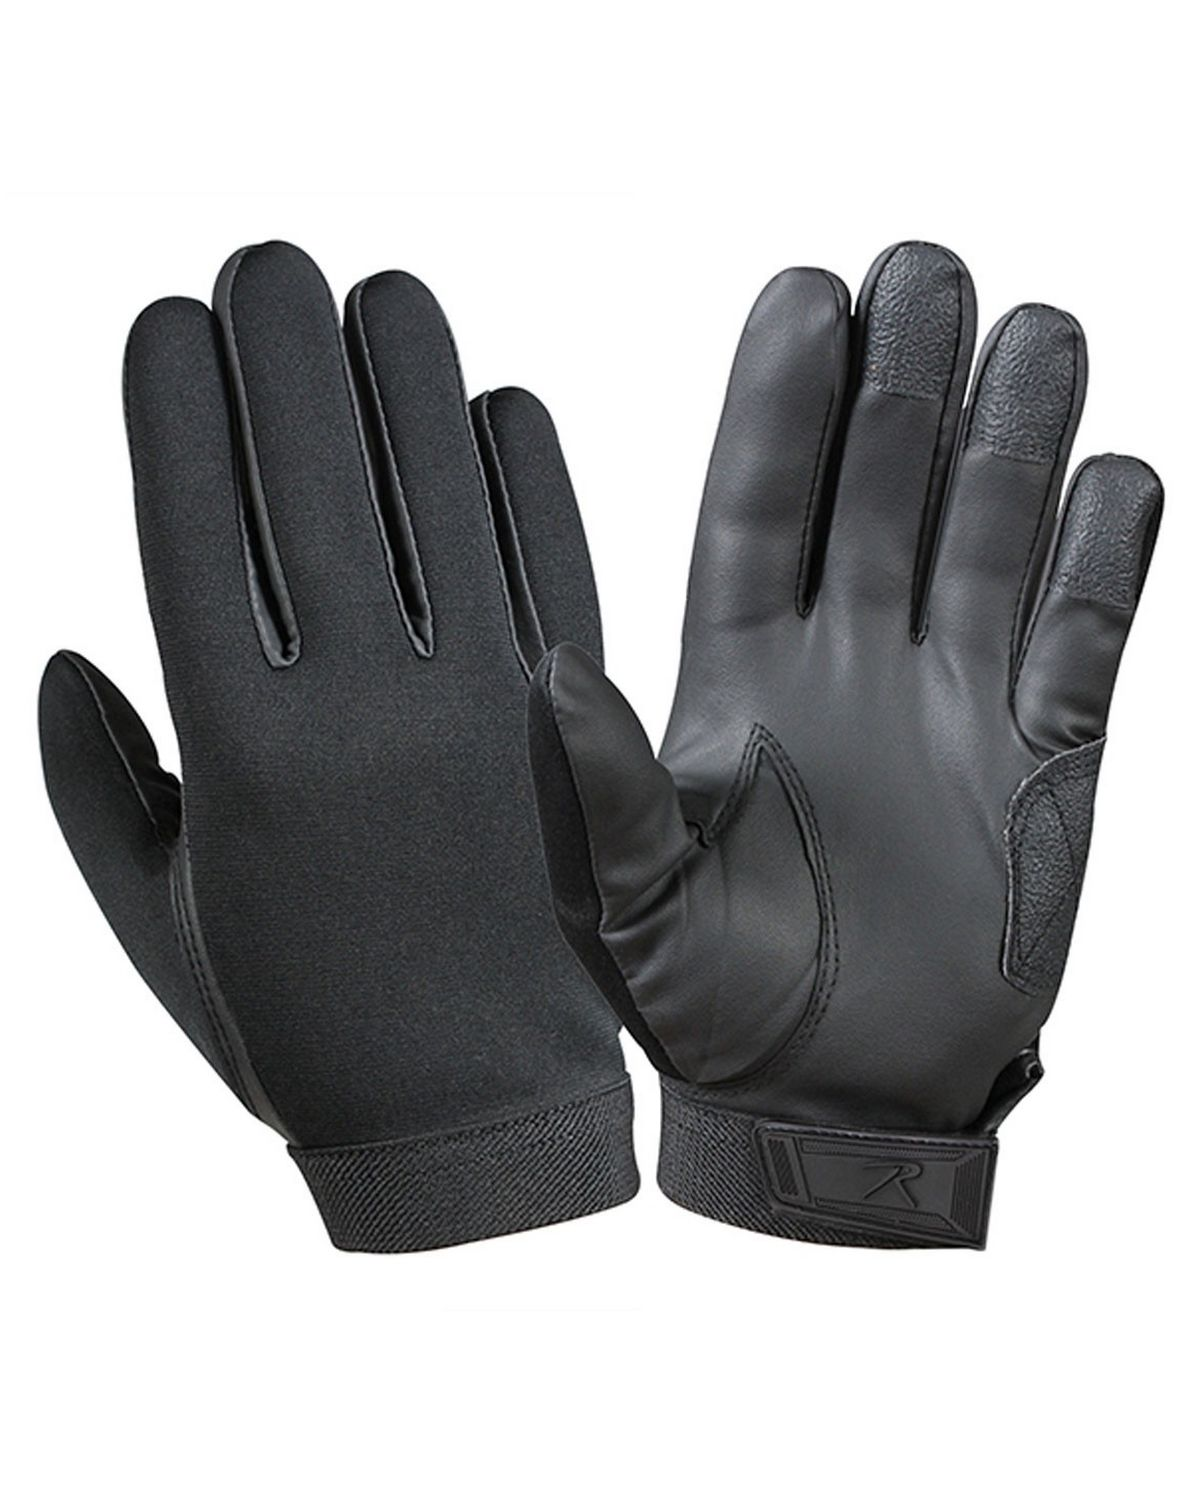 Rothco 3455 Multi-Purpose Gloves - Black - L 3455